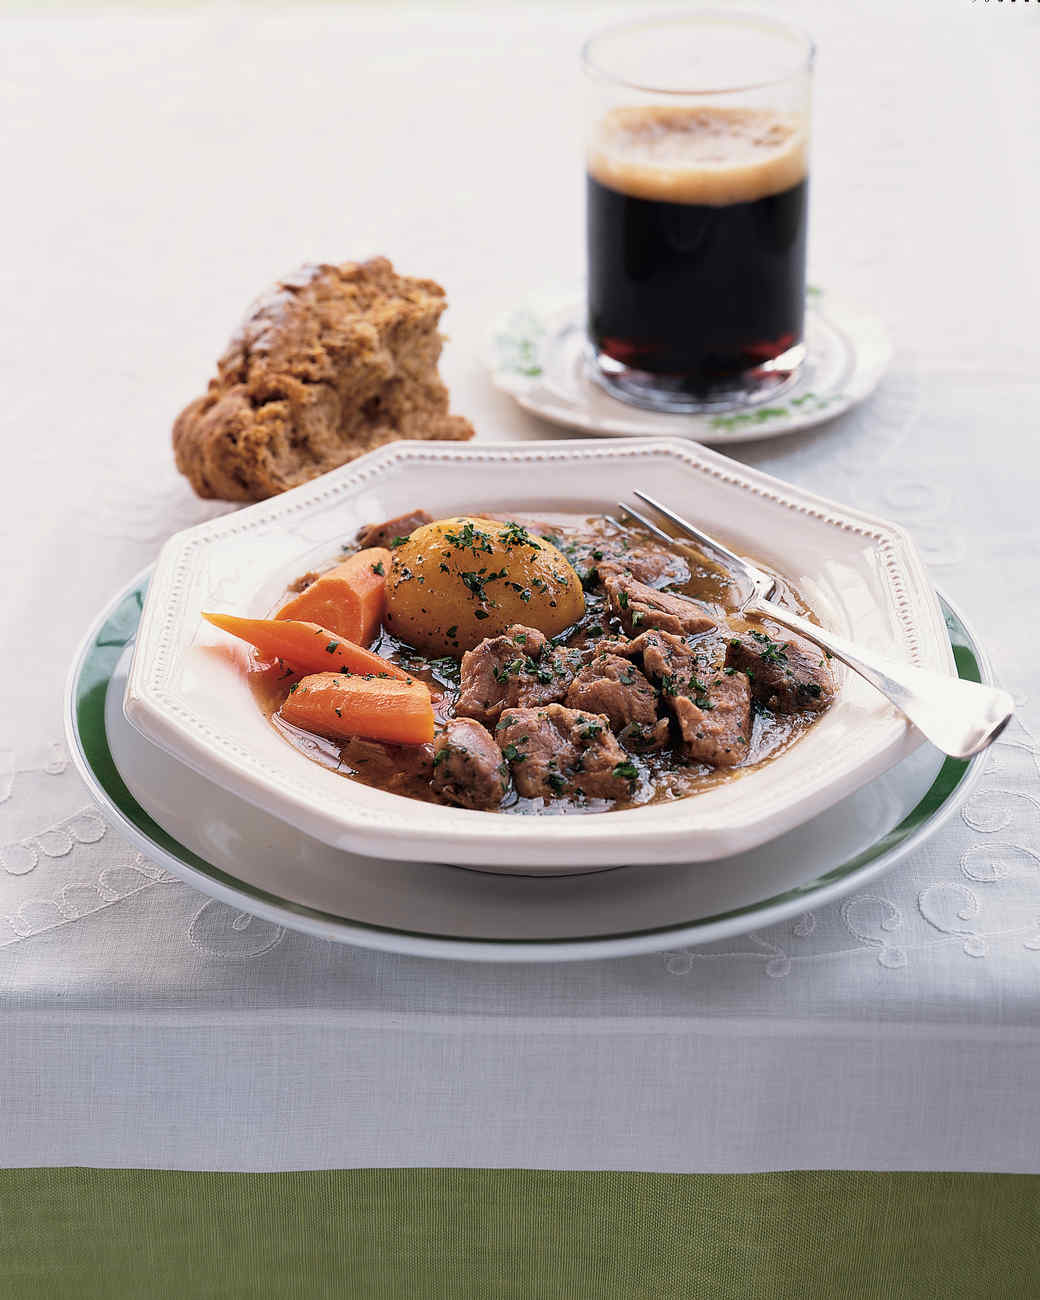 No Corned Beef and Cabbage Here! What do the Irish Eat on St. Patrick's Day?